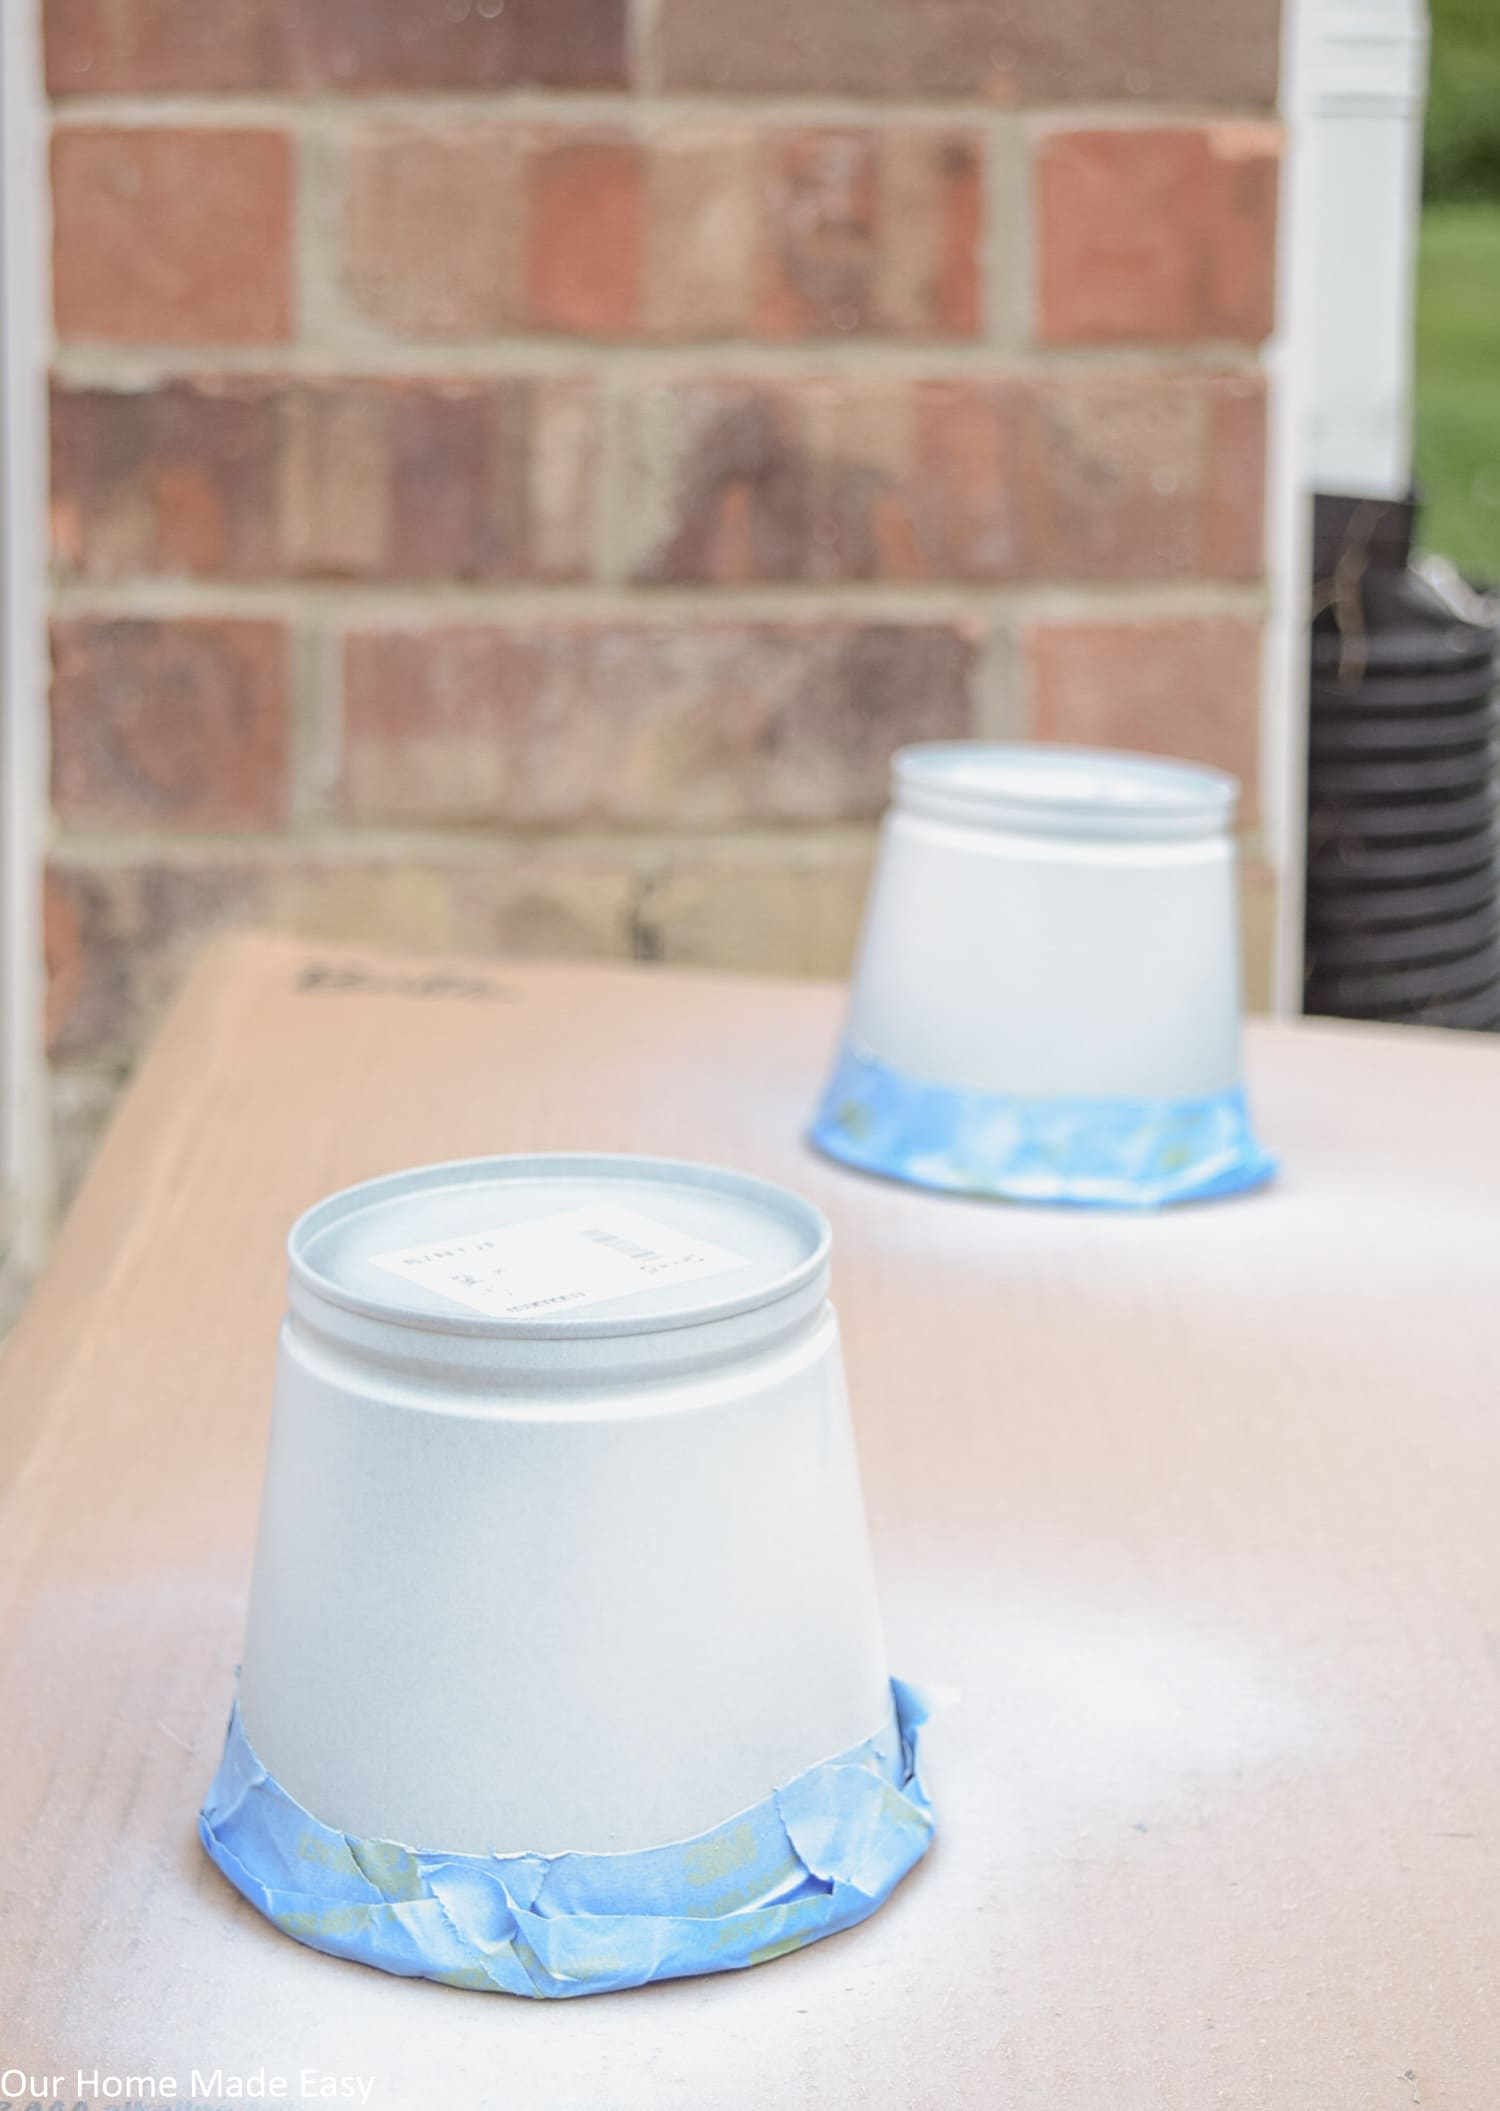 These metal planters receive their first coat of white Plasti Dip crafting spray paint